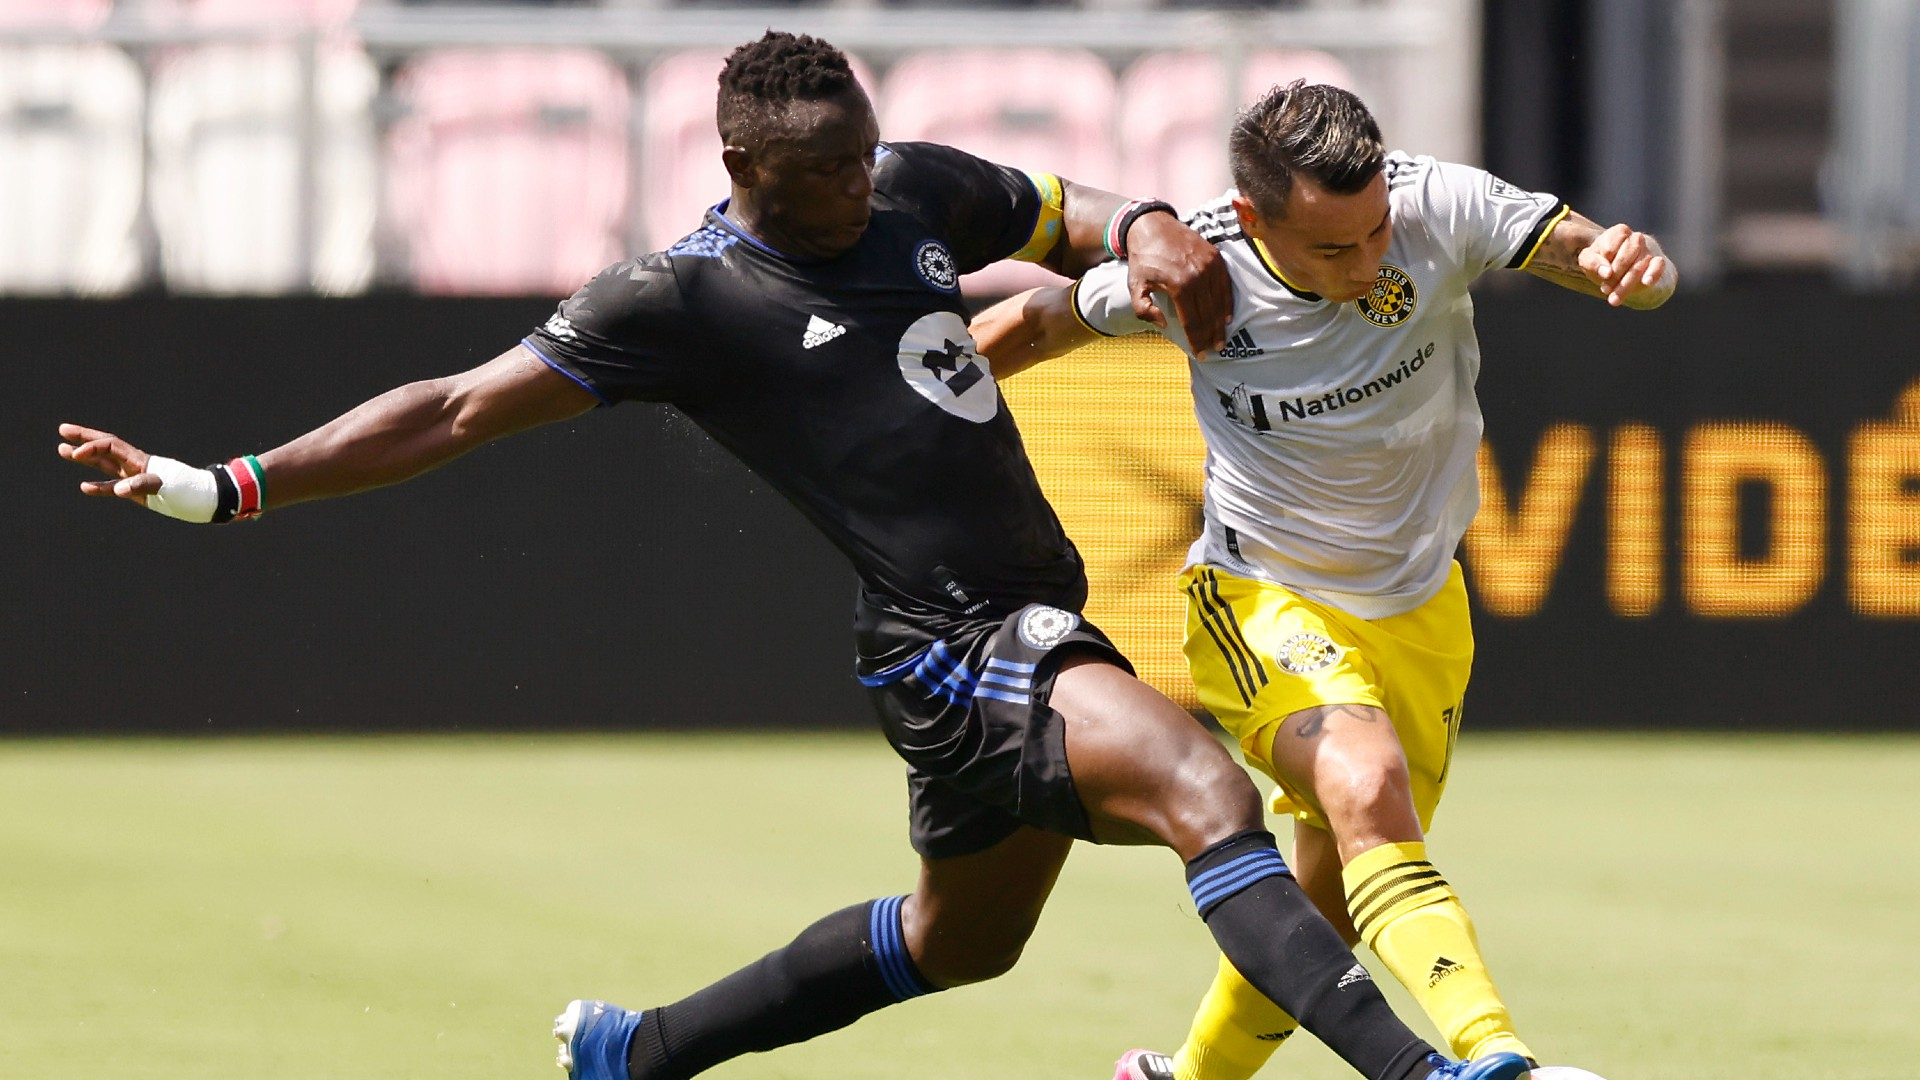 Wanyama's CF Montreal lose to New England Revolution in MLS